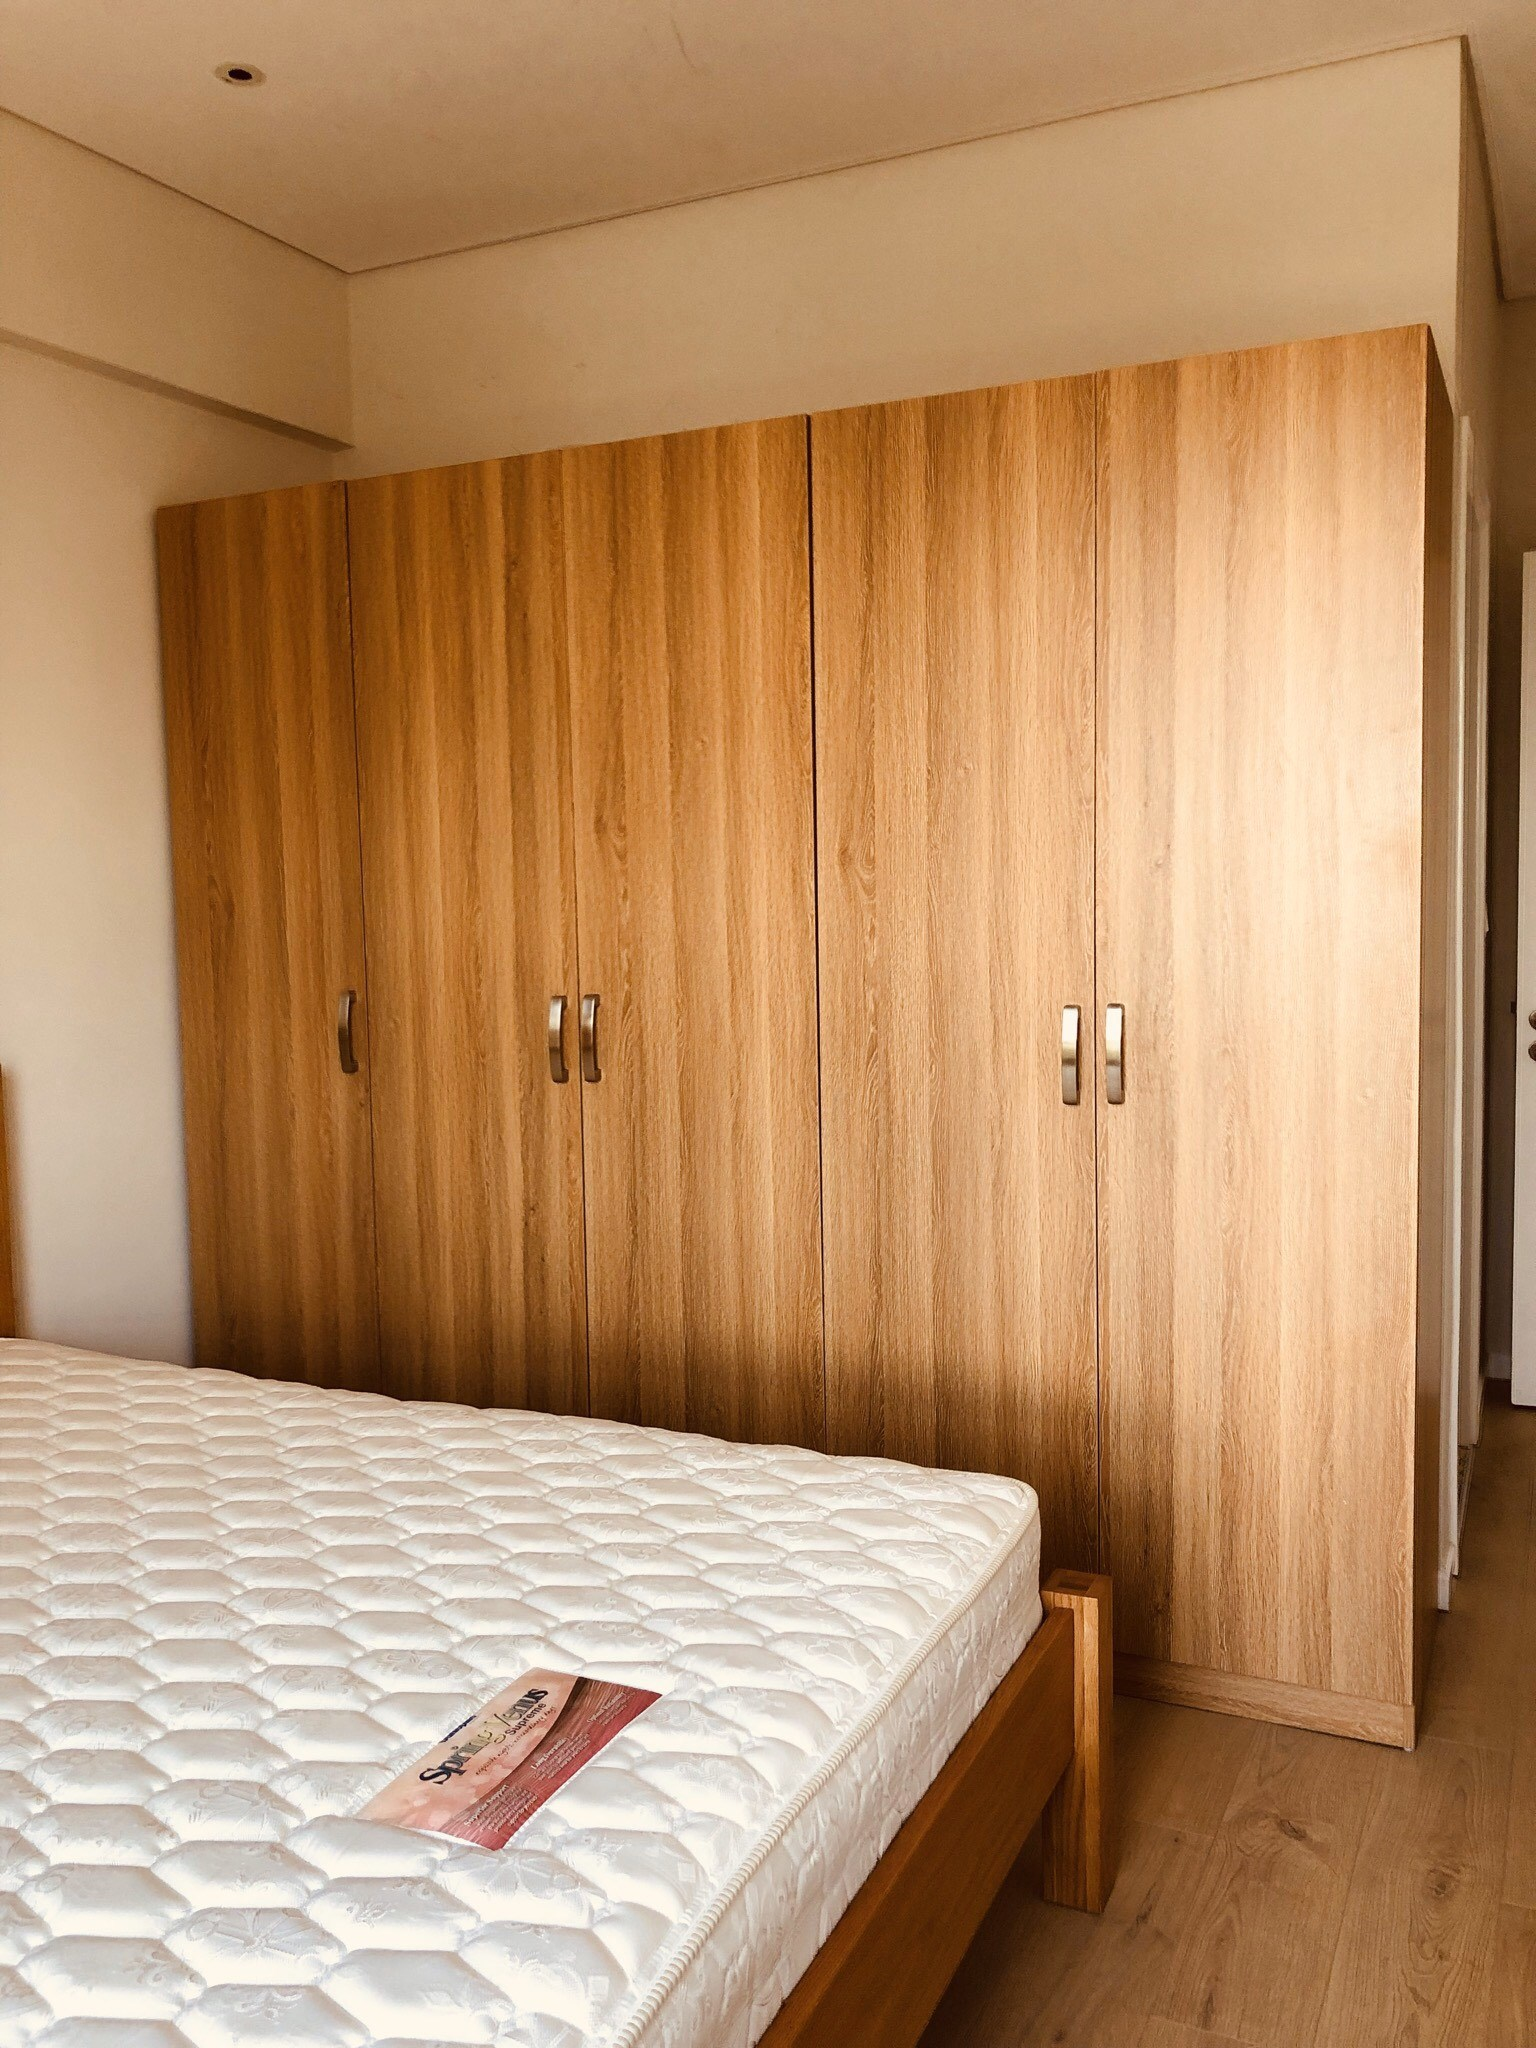 DI0904 - Diamond Island Apartment For Rent & Sale in Ho Chi Minh City - 2 bedroom